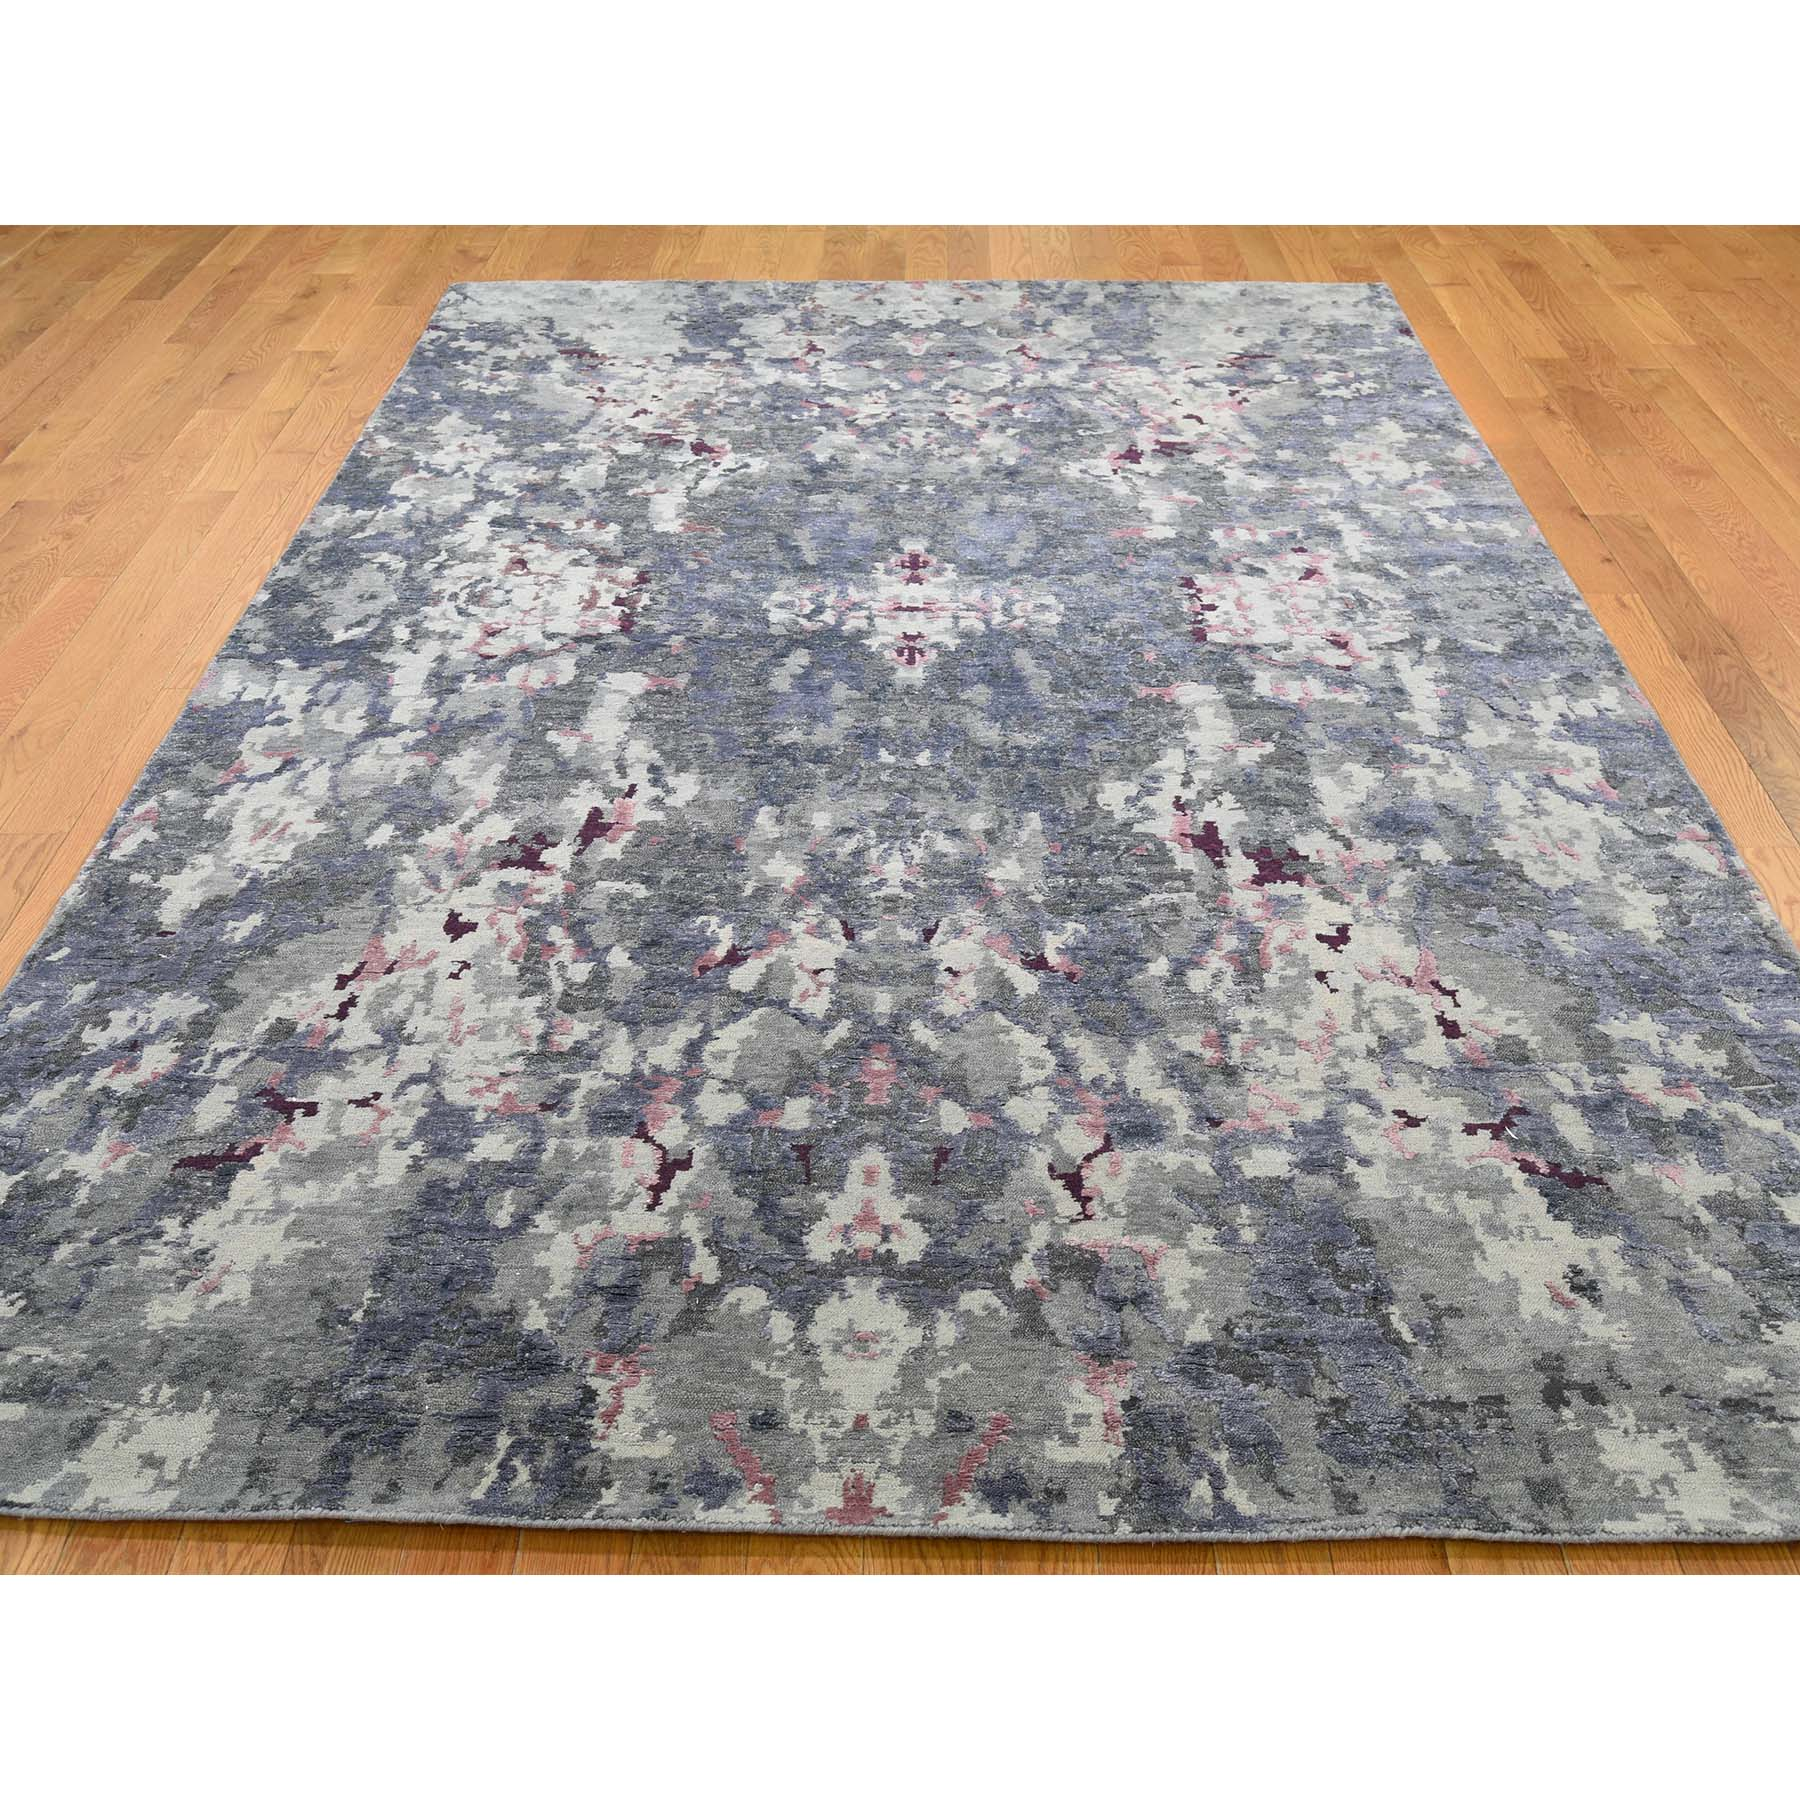 6-x8-10  Abstract Design Wool And Silk Hand-Knotted Rug